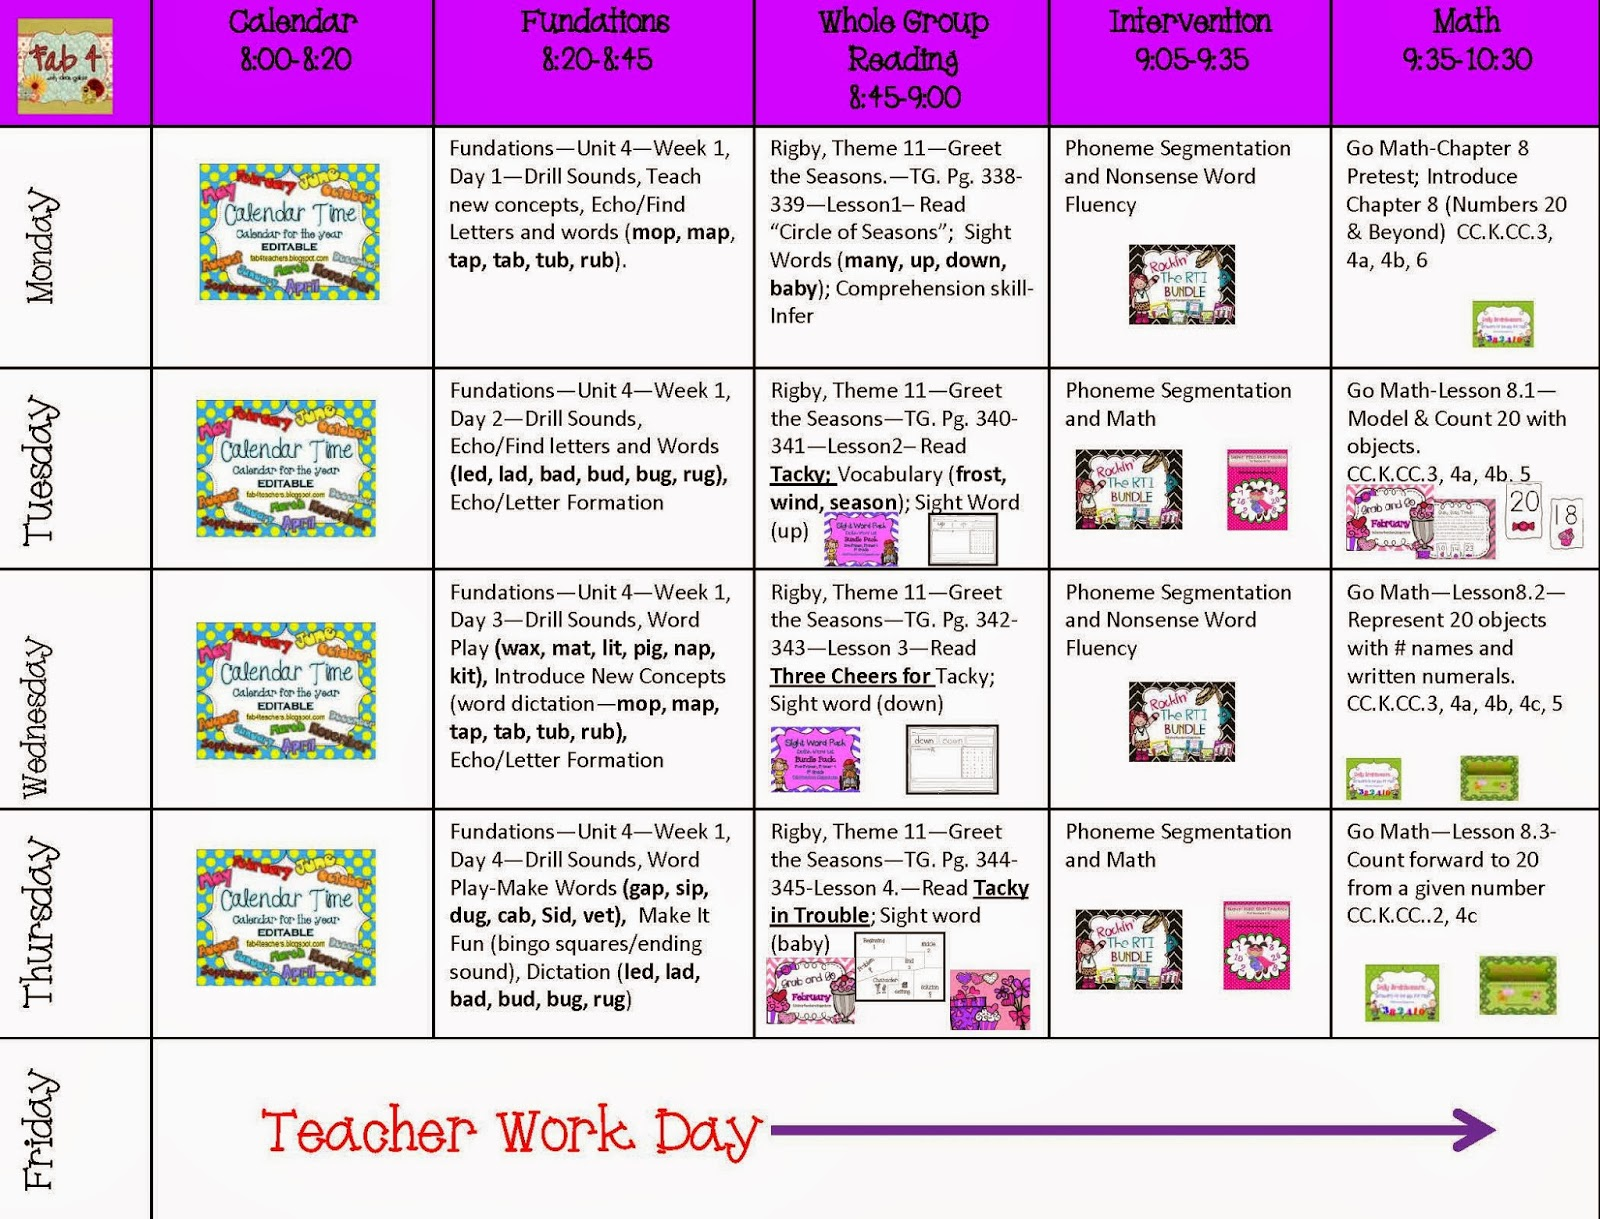 Fab4 Lesson Plans for the Week of February 10, 2014